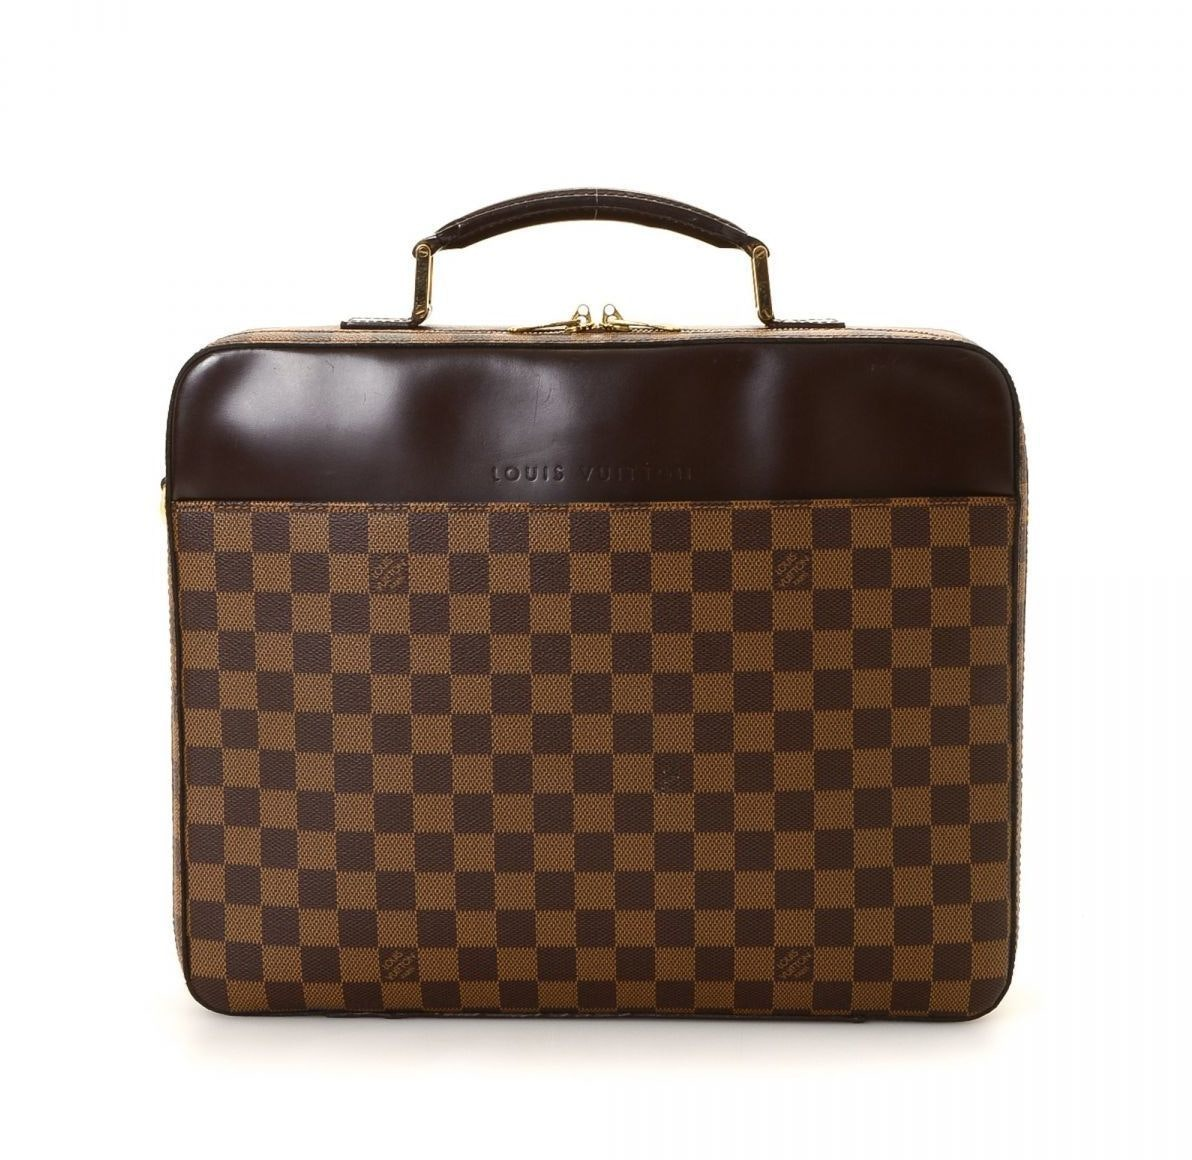 Louis Vuitton Sabana Laptop Case Damier Ebene Brown